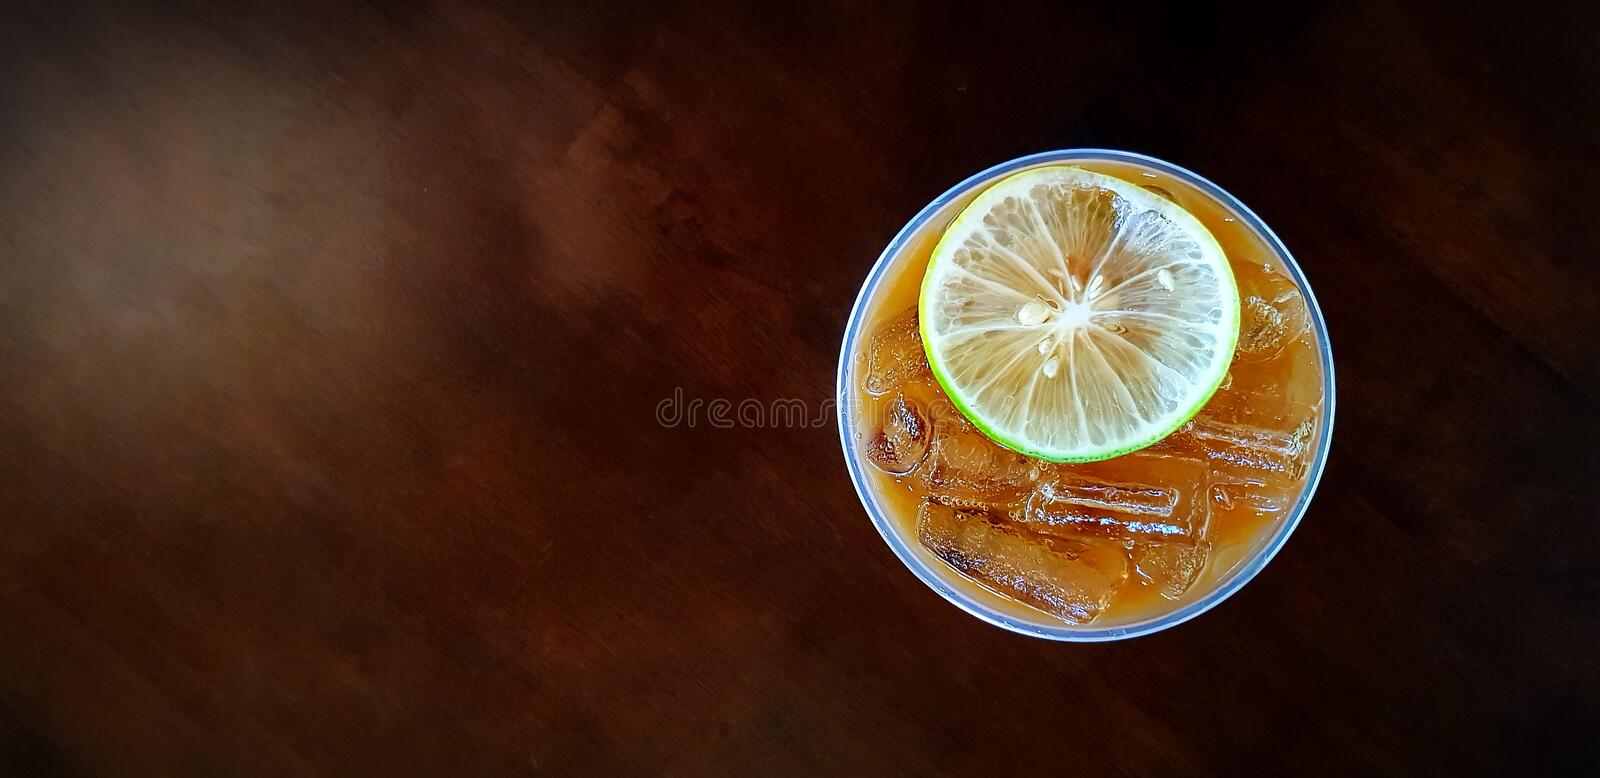 Flat lay of plastic glass of iced lemon tea with sliced lime or lemon on top isolated on dark wooden background stock photography